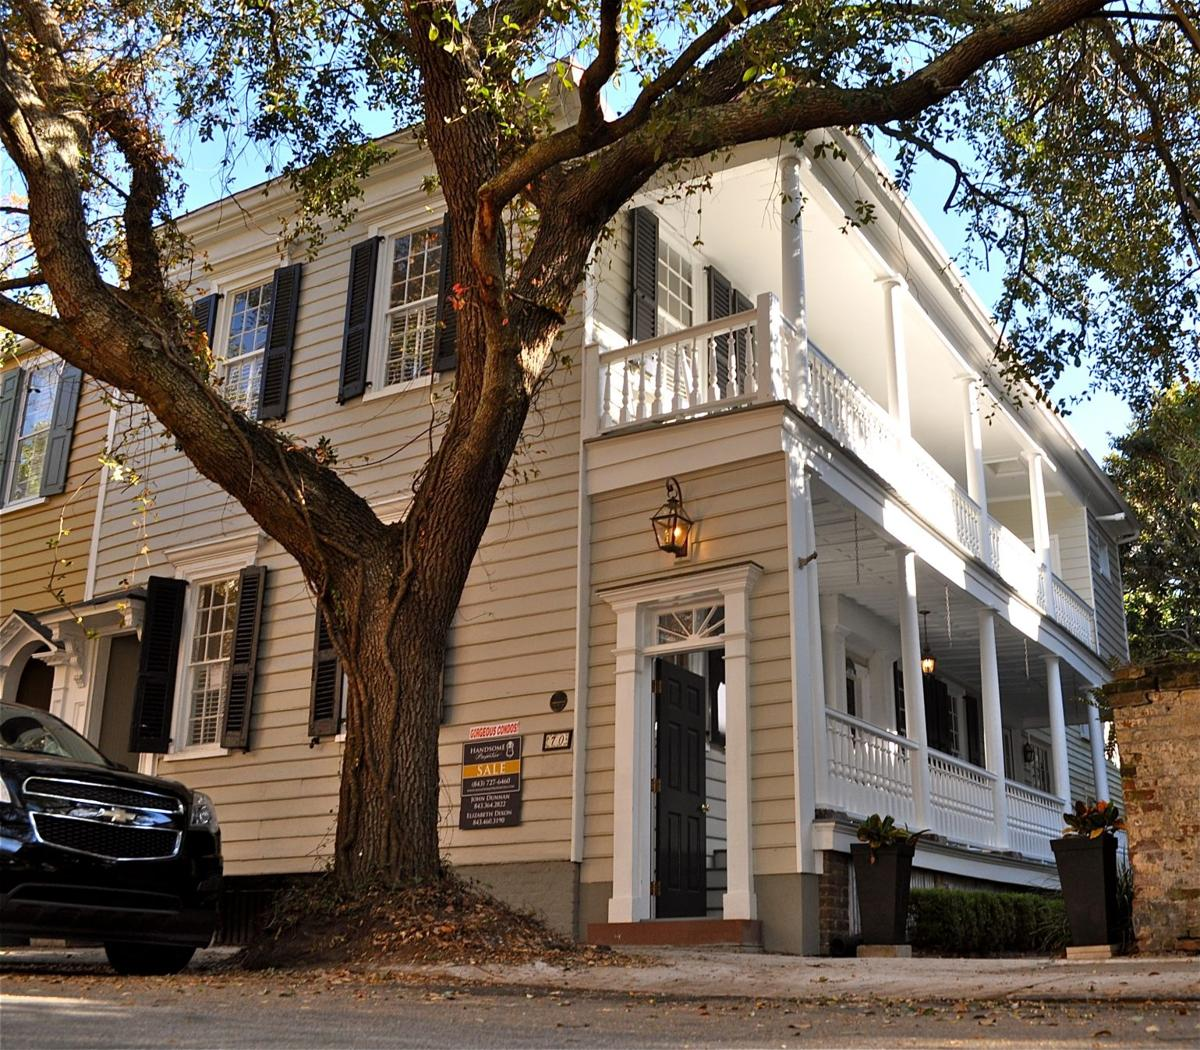 Building Charities Buys, Restores And Sells Historic Homes